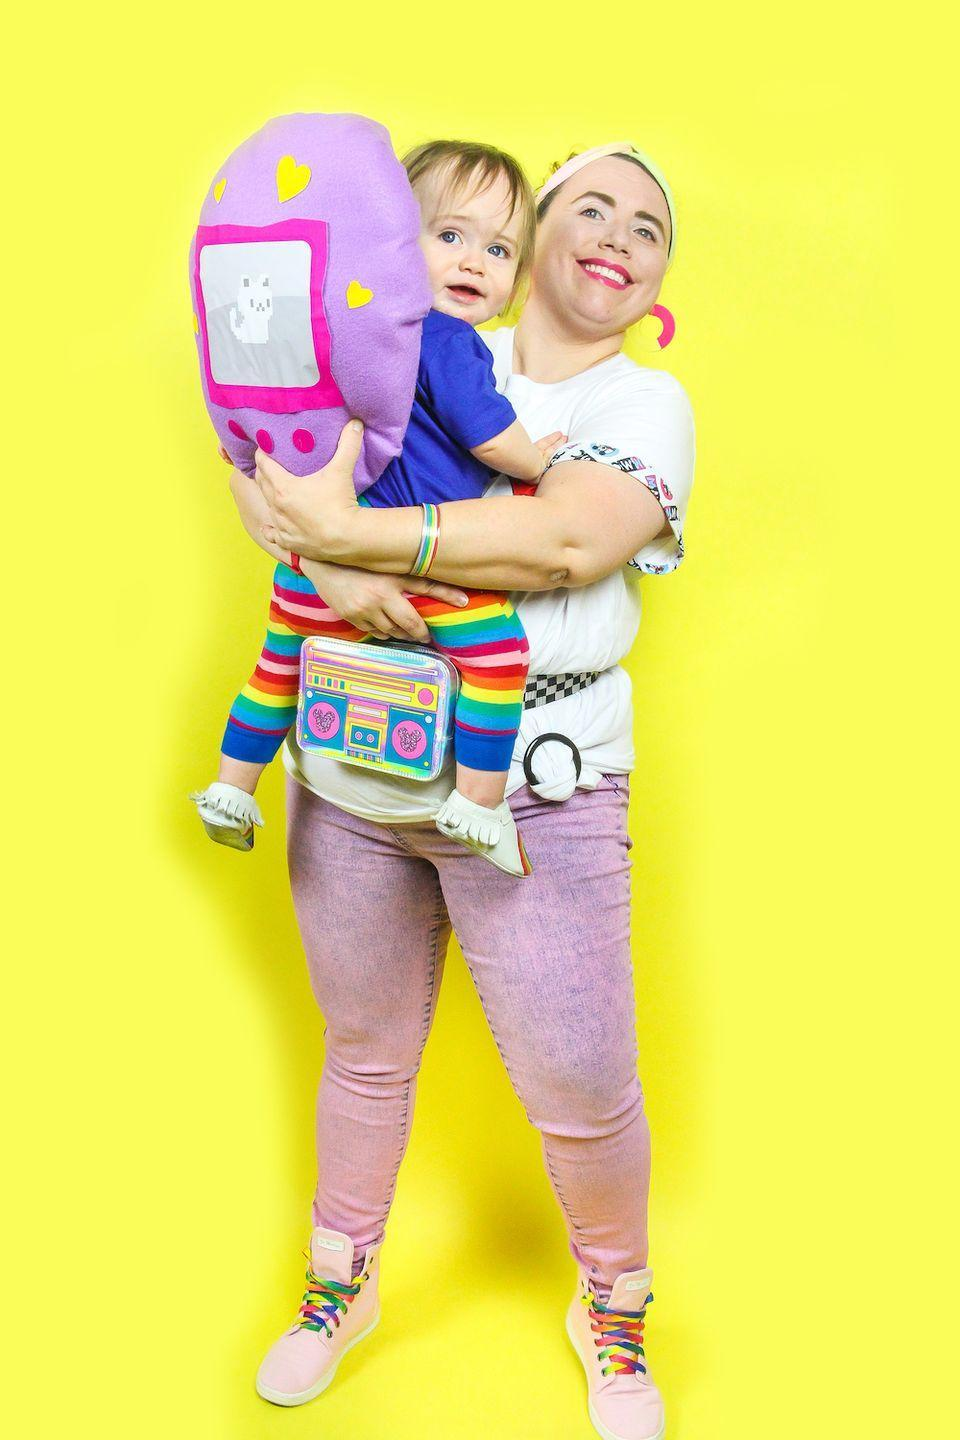 """<p>Here's a fun costume for a duo—parent and child or two best friends—a '90s teen and their trusty Tamagotchi. </p><p><em><a href=""""https://briteandbubbly.com/90s-throwback-teen-and-tomagotchi-themed-mommy-me-costume/"""" rel=""""nofollow noopener"""" target=""""_blank"""" data-ylk=""""slk:Get the tutorial."""" class=""""link rapid-noclick-resp"""">Get the tutorial.</a></em></p><p><a class=""""link rapid-noclick-resp"""" href=""""https://www.amazon.com/MIAIULIA-Waist-Costumes-Festival-Travel/dp/B07K78552L?tag=syn-yahoo-20&ascsubtag=%5Bartid%7C10072.g.37059504%5Bsrc%7Cyahoo-us"""" rel=""""nofollow noopener"""" target=""""_blank"""" data-ylk=""""slk:SHOP FANNY PACK"""">SHOP FANNY PACK</a></p>"""